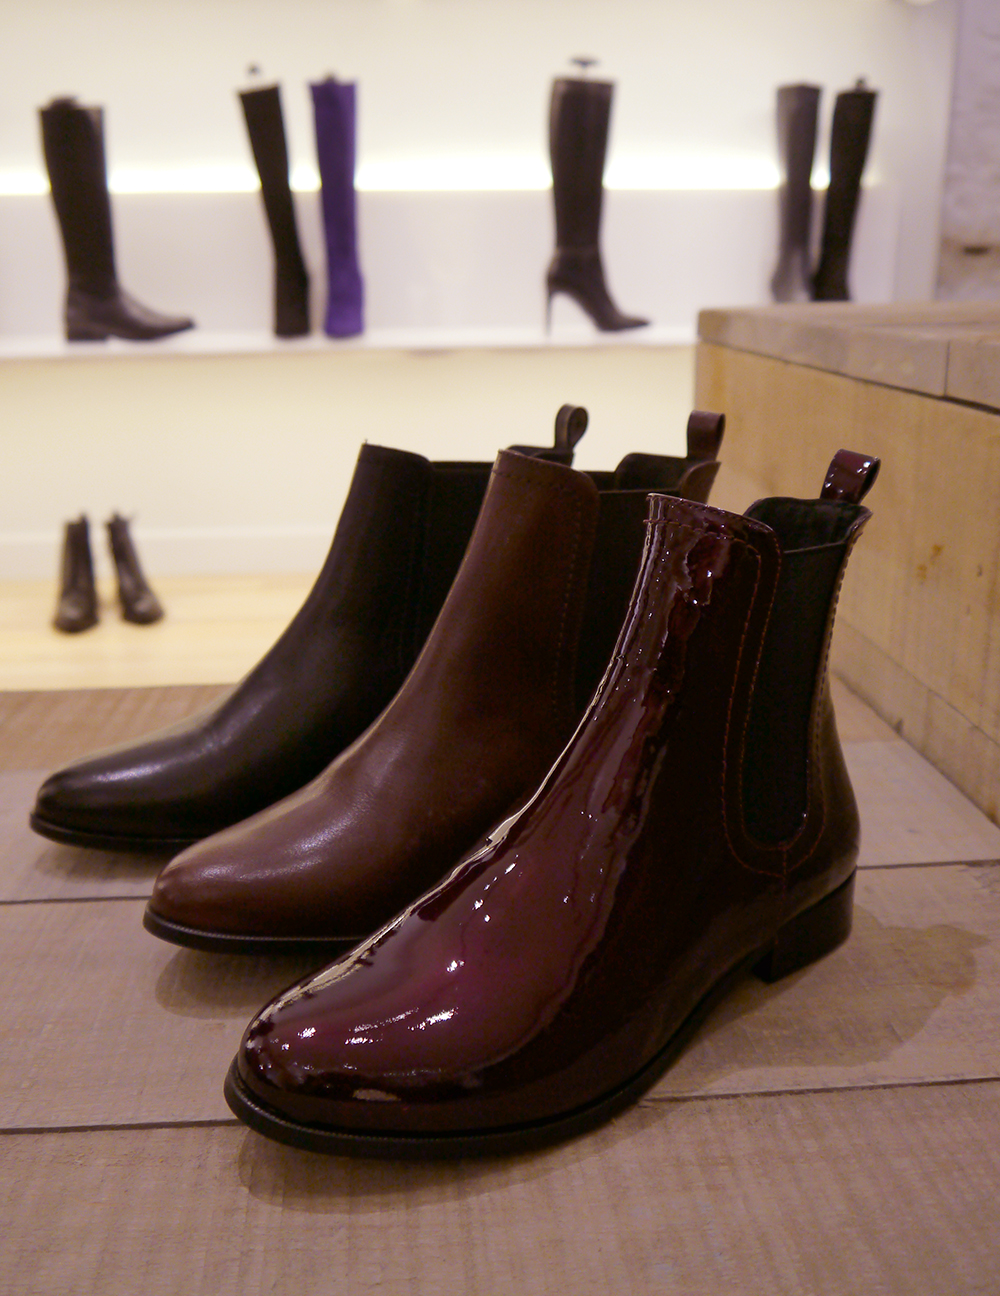 Ted and Muffy, AW 2015, fairytale fitters, Edinburgh boots, over the knee suede boots, blogger event, Scottish bloggers